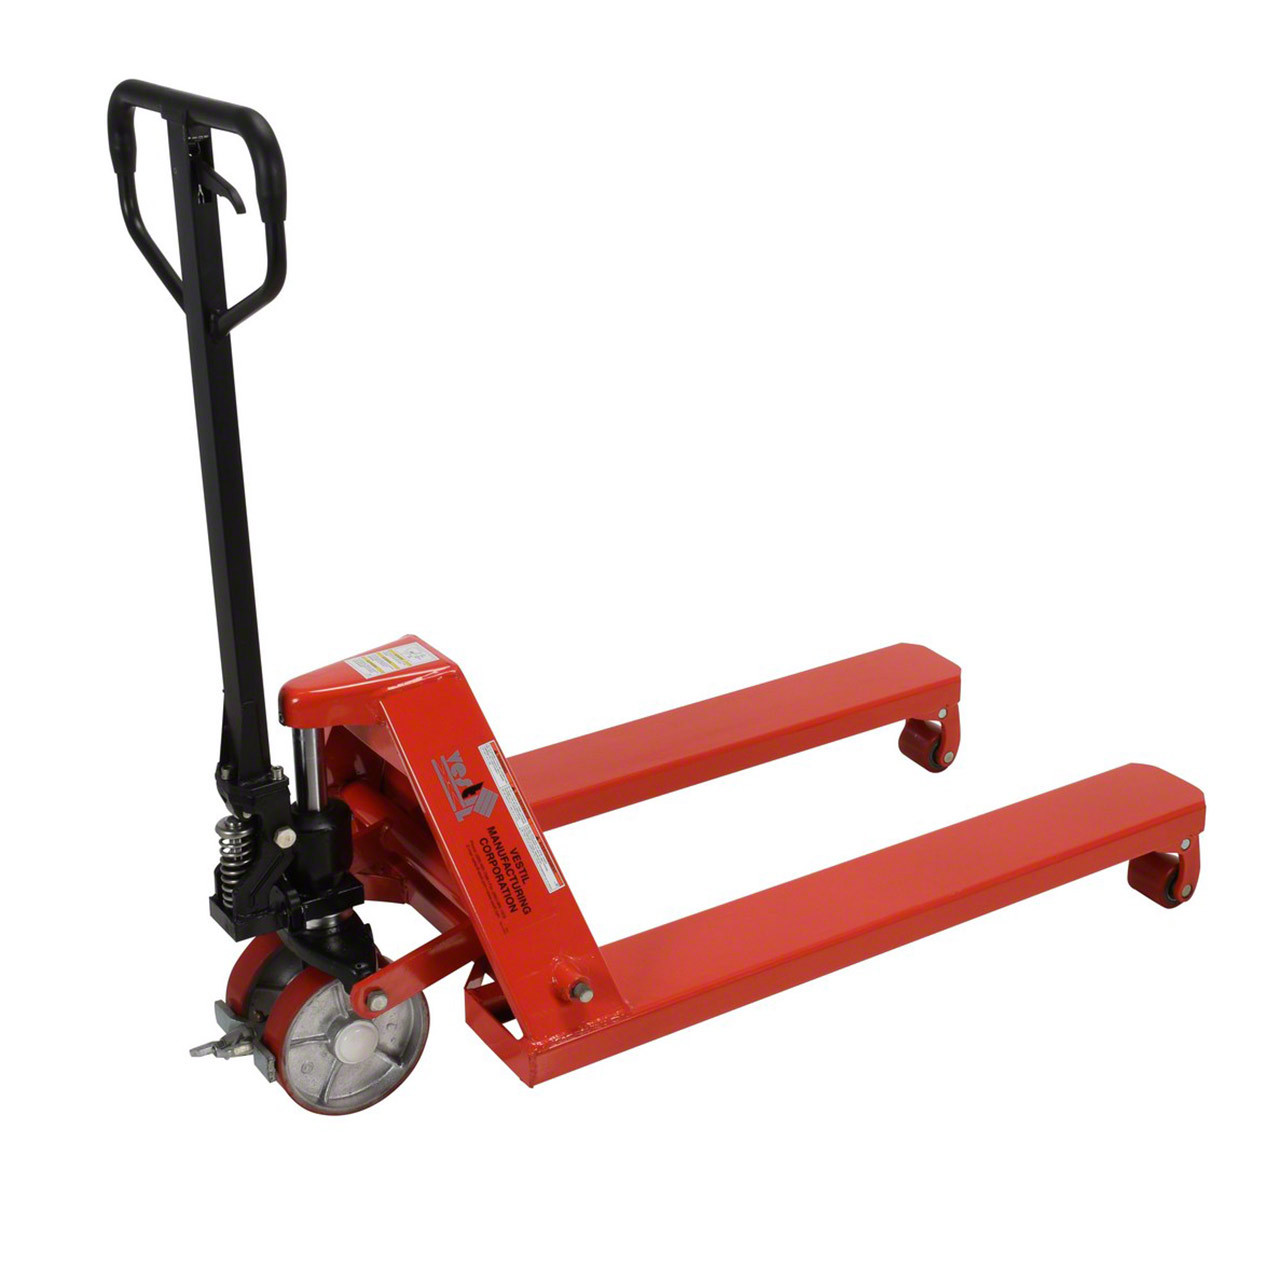 Side view of this wheel nose pallet jack